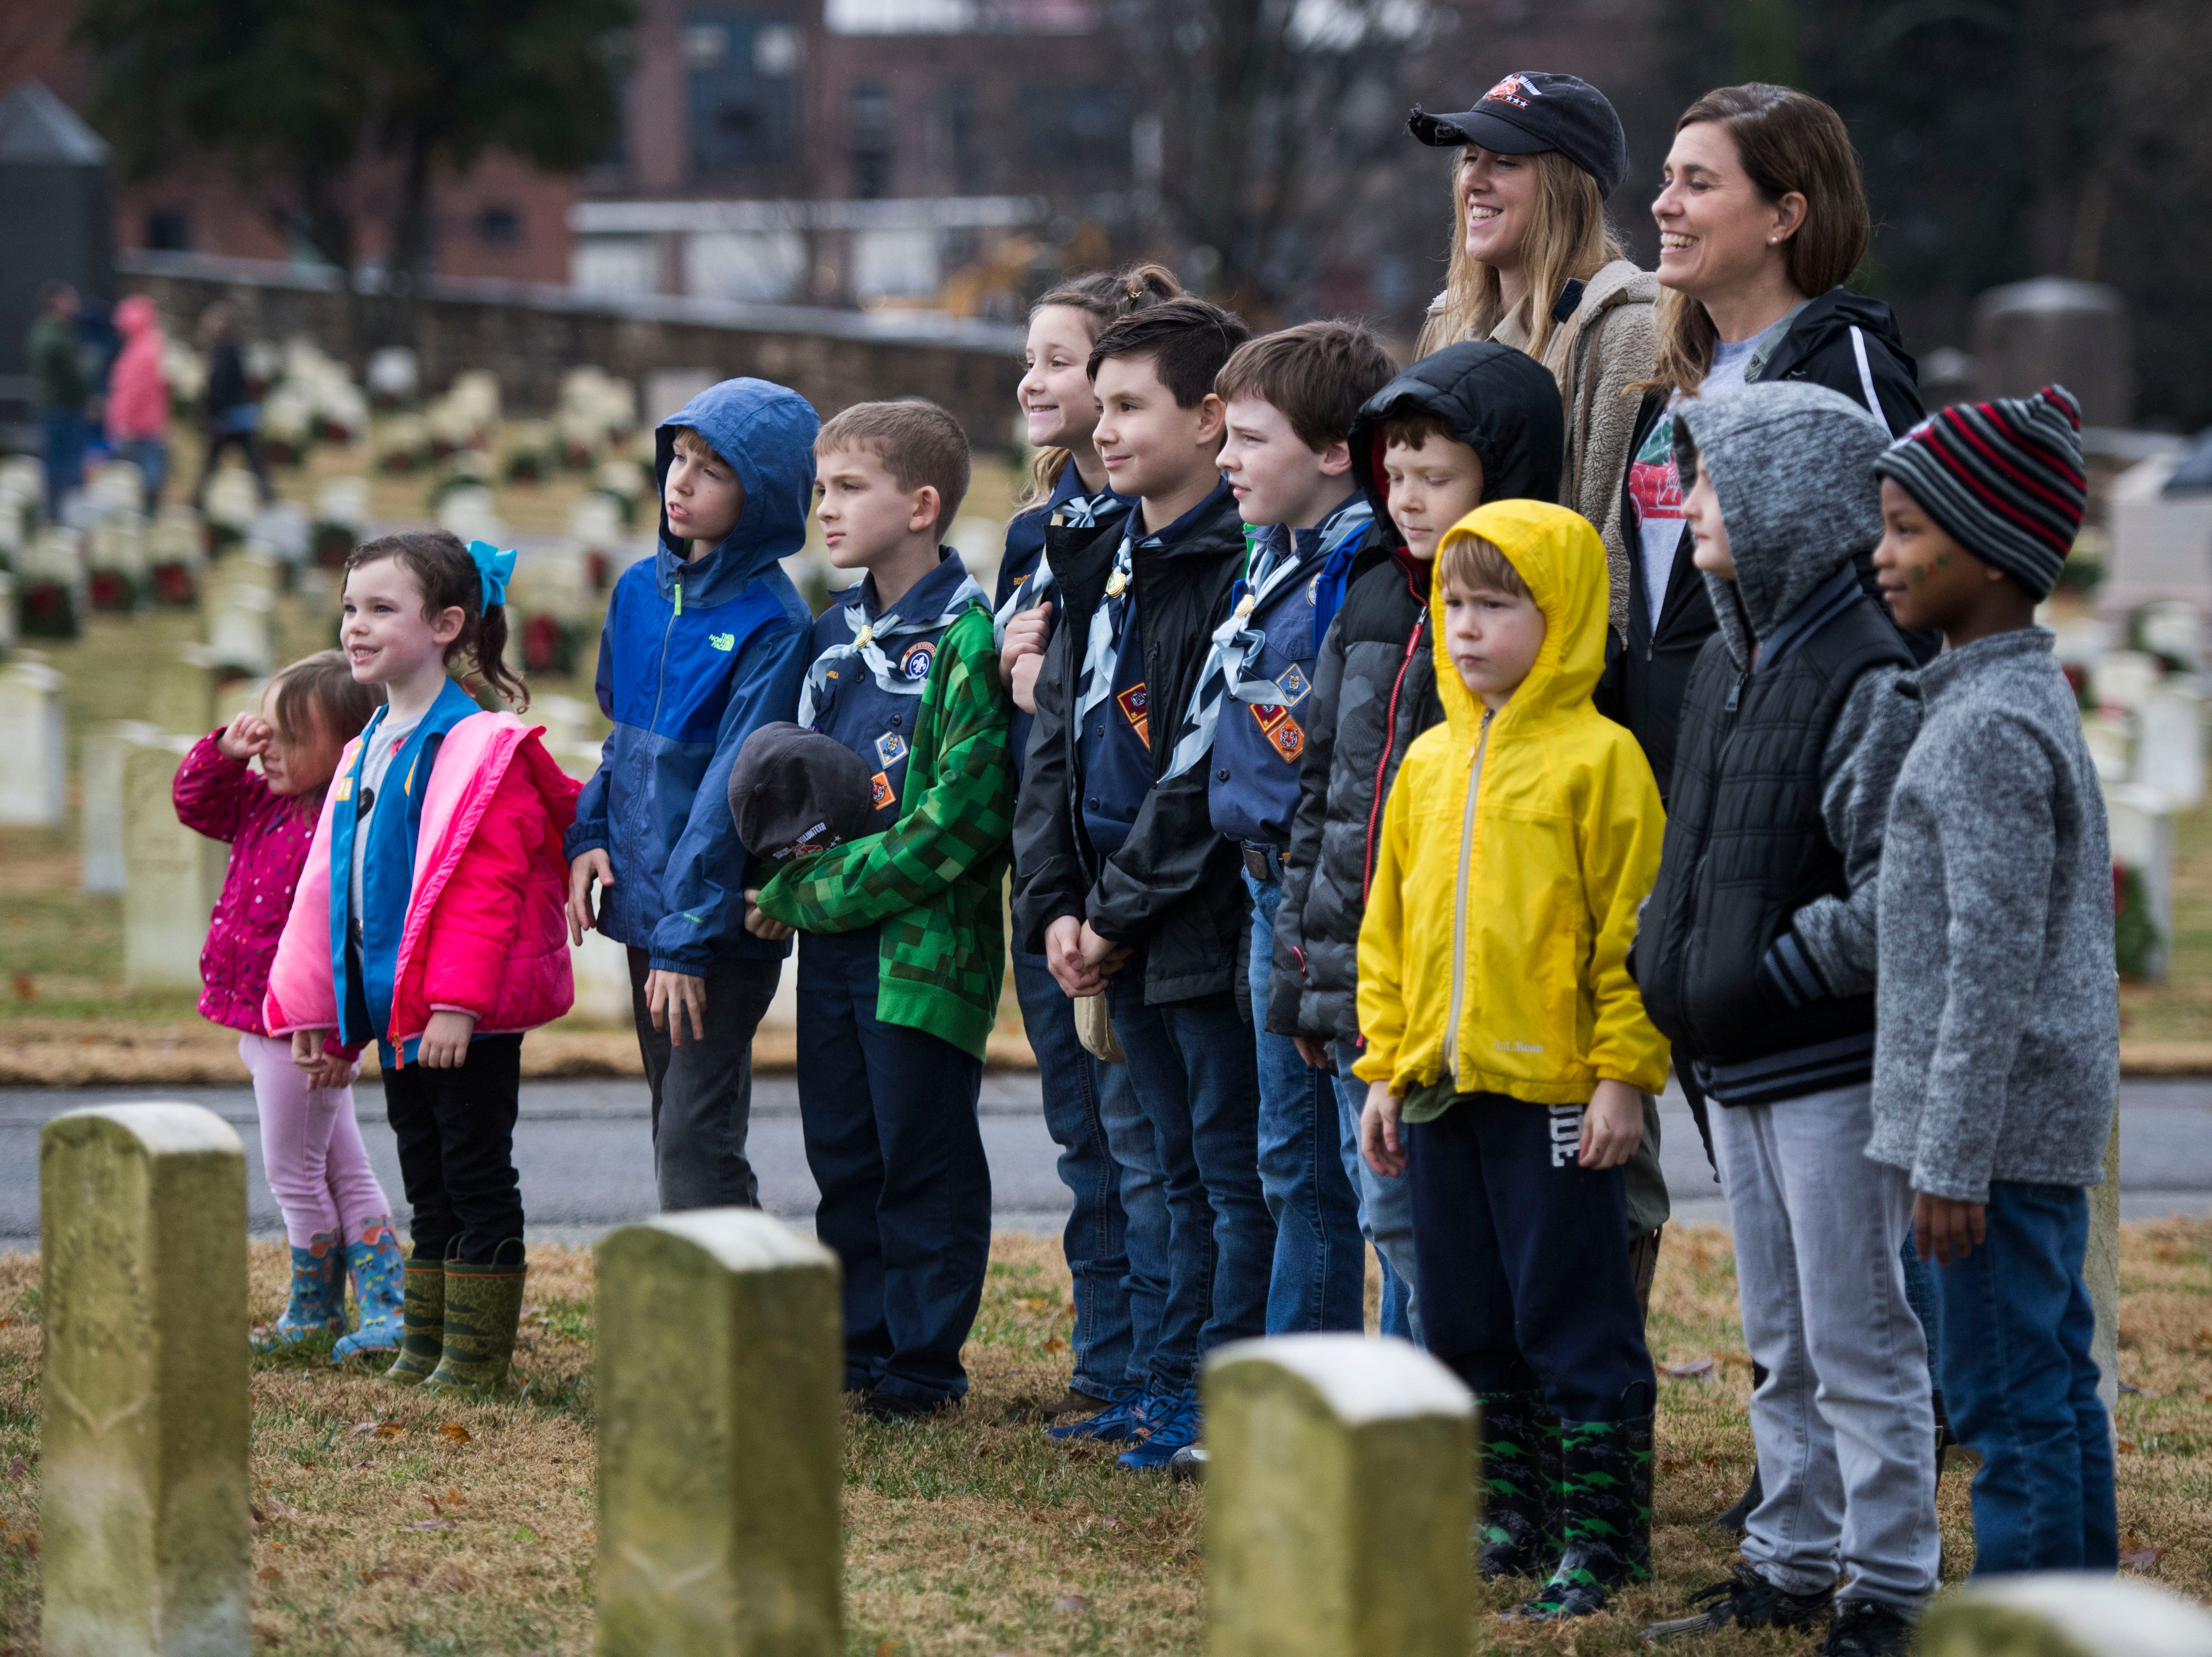 Scouts pose for a photo during a Wreaths Across America ceremony at Knoxville National Cemetery north of downtown Knoxville Saturday, Dec. 15, 2018. Evergreen wreaths were placed on veteran headstones.